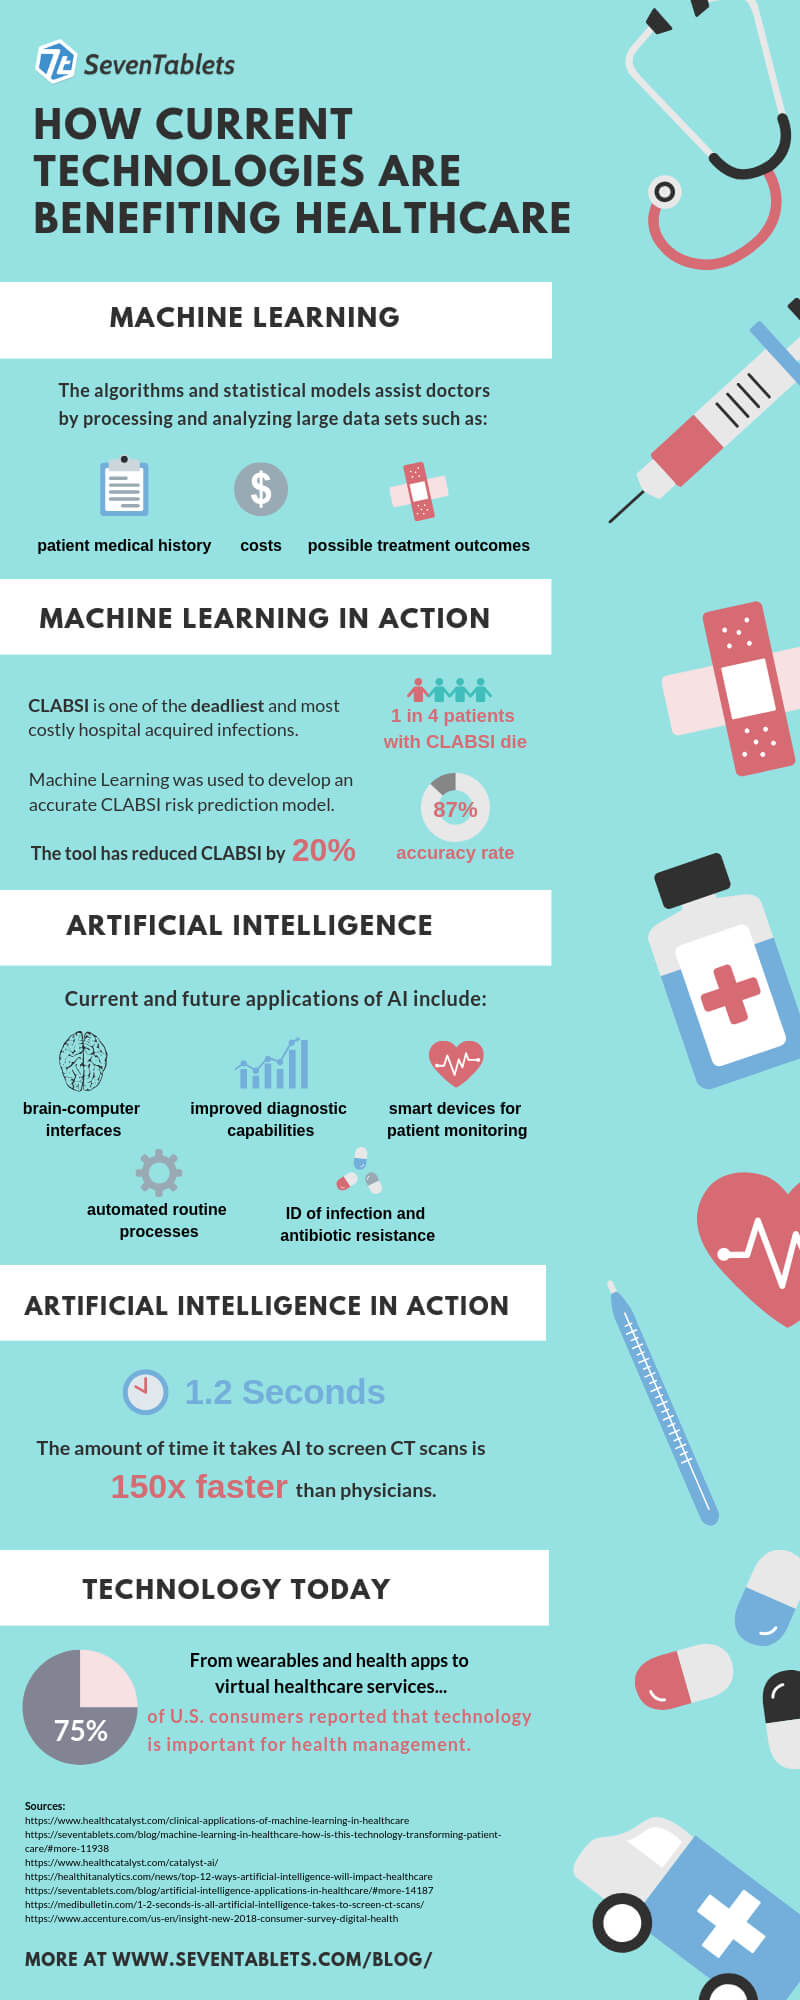 How Machine Learning and AI Benefit Healthcare